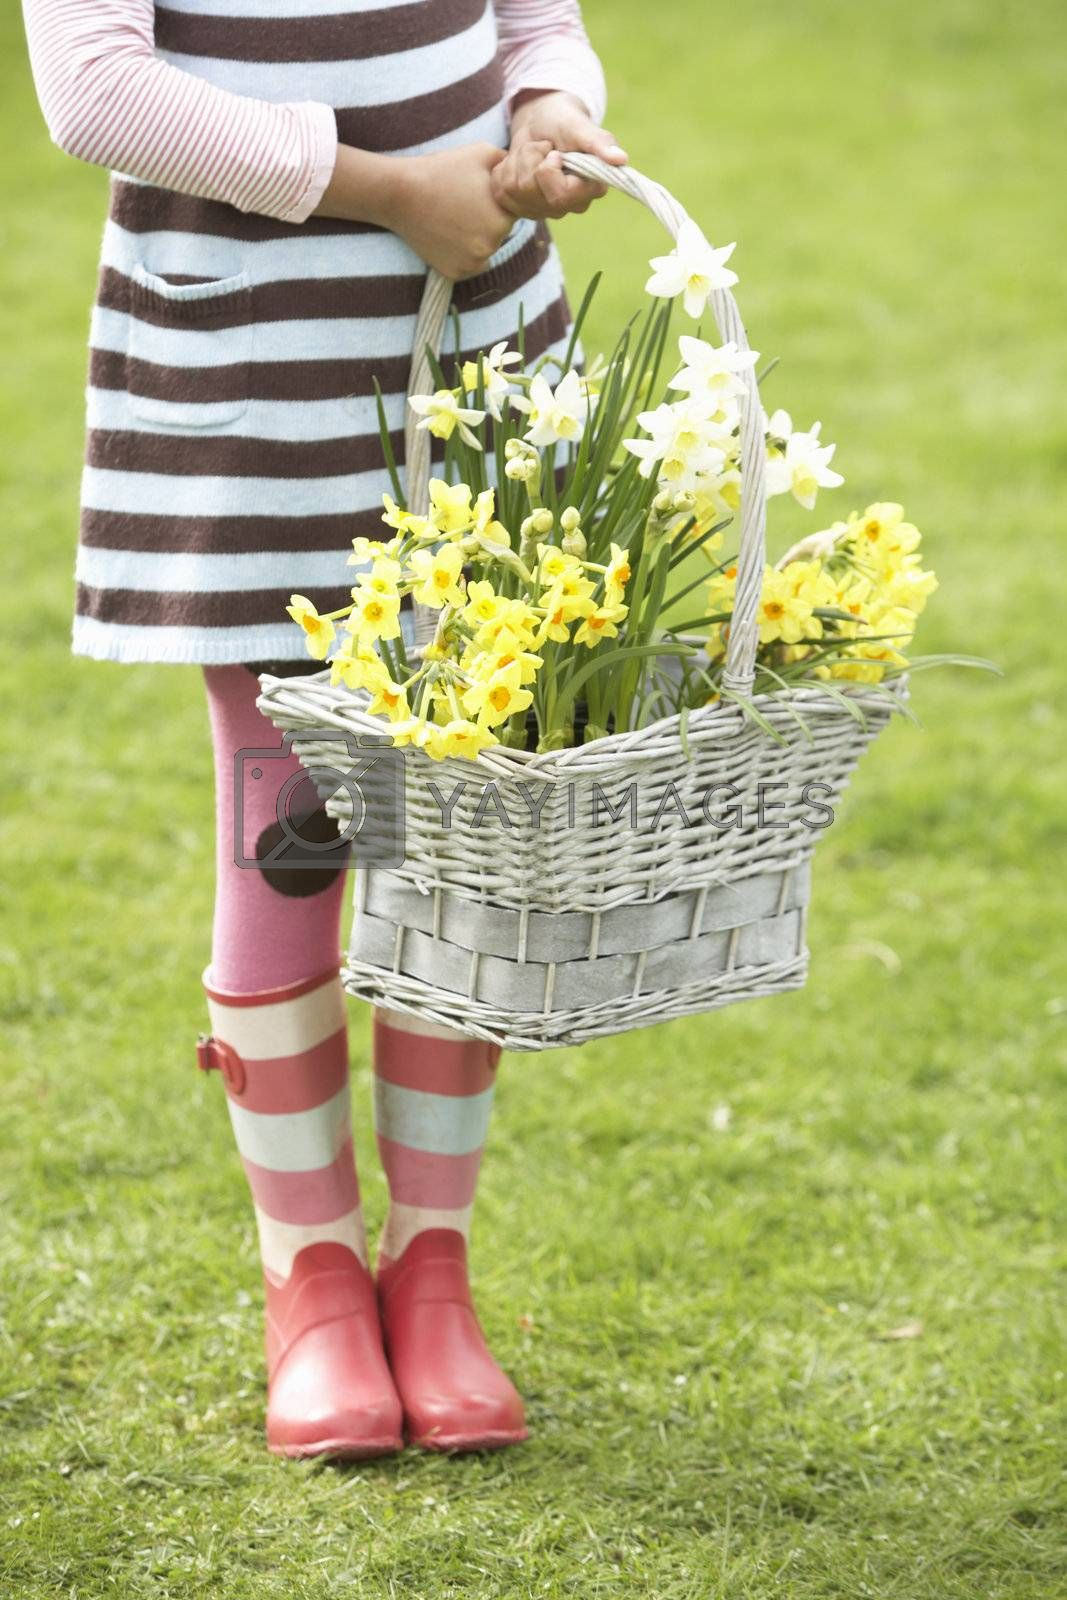 Royalty free image of Detail Of Girl Holding Basket Of Daffodils In Garden by omg_images